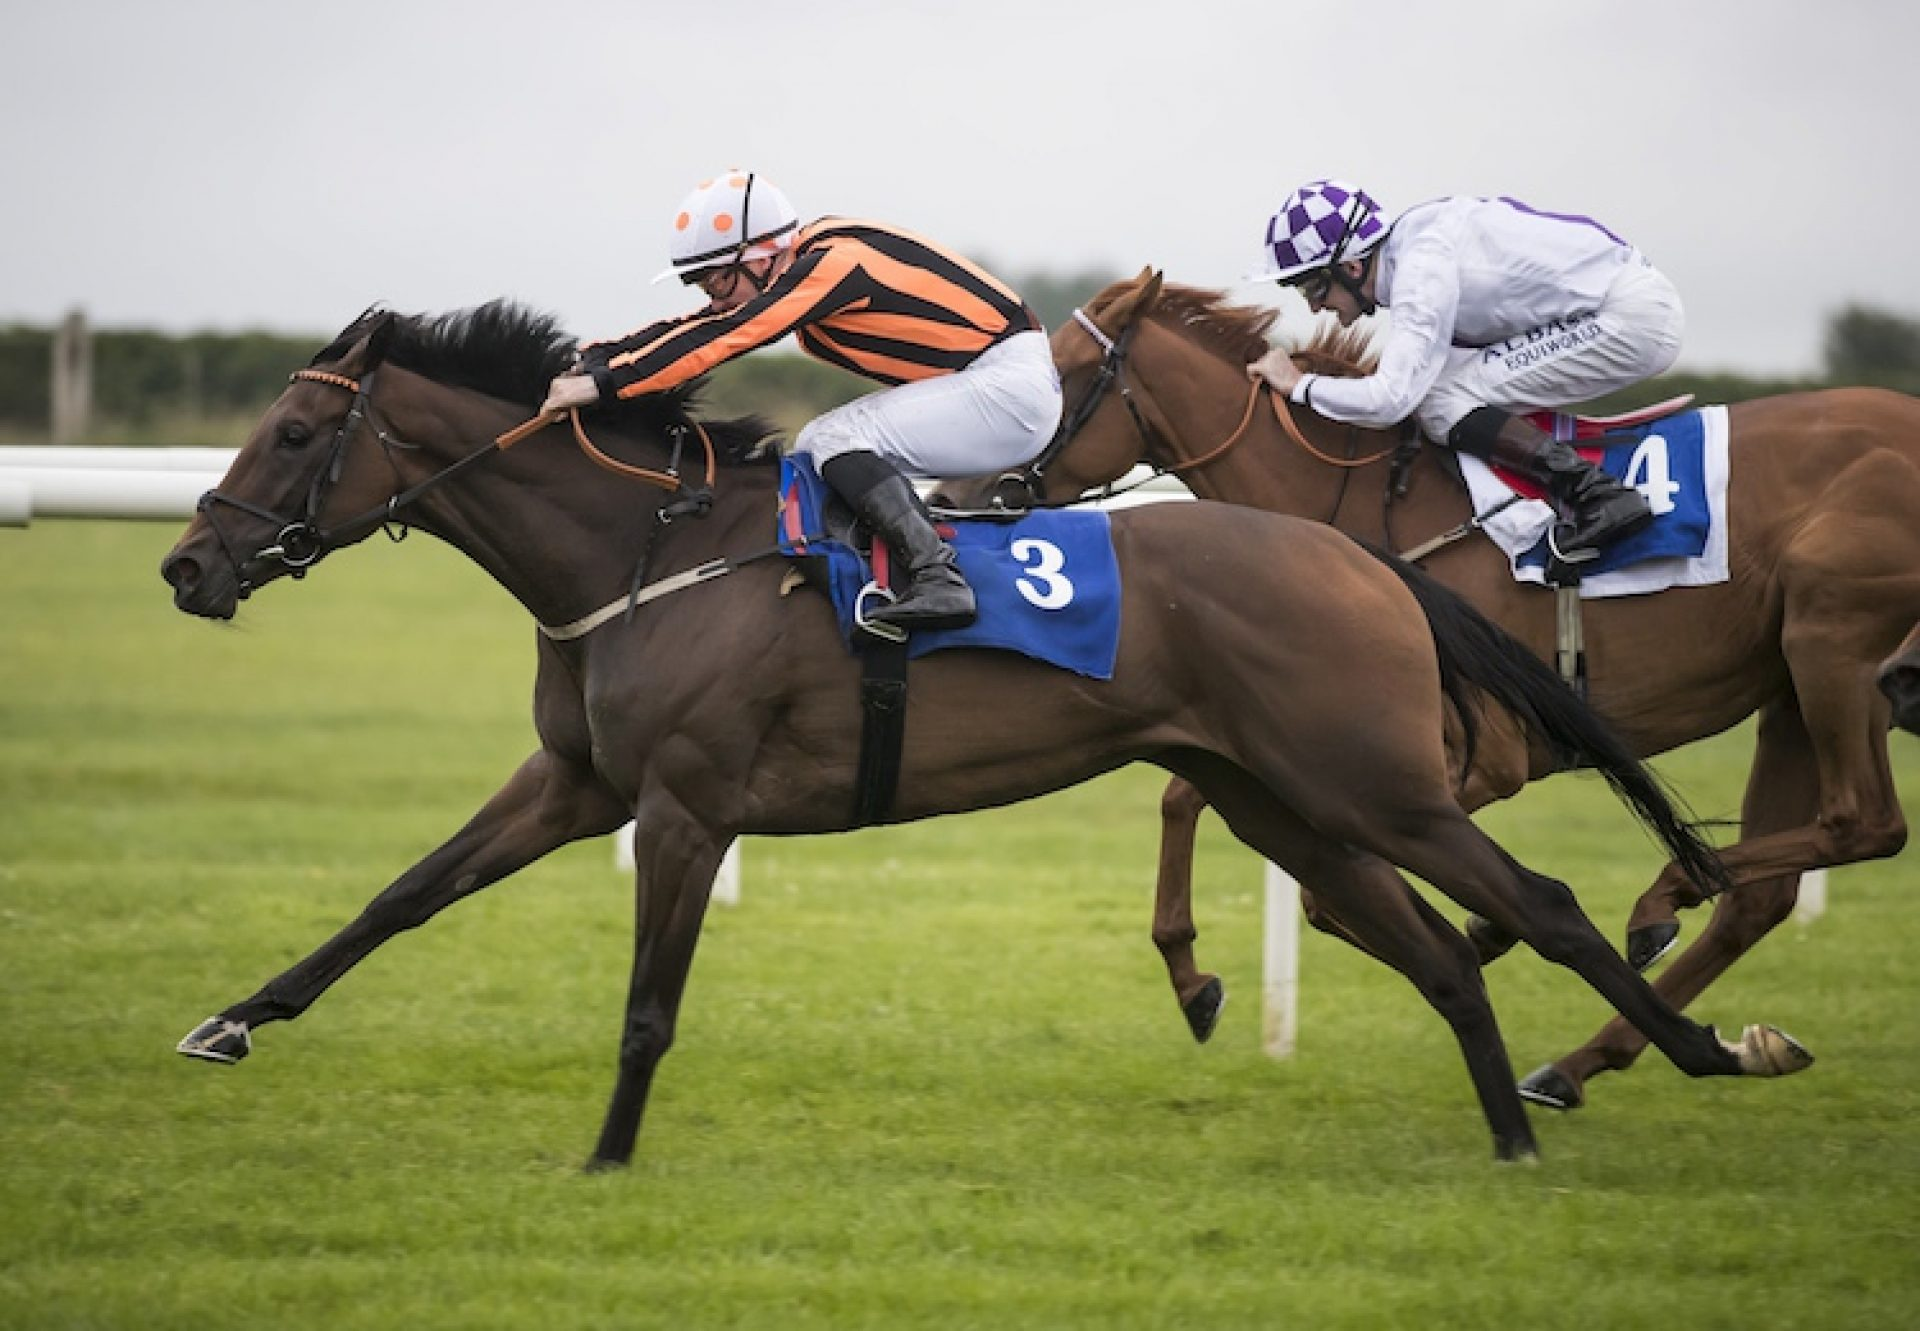 Flying Fairies (Holy Roman Emperor) winning the Listed Lenebane Stakes at Roscommon